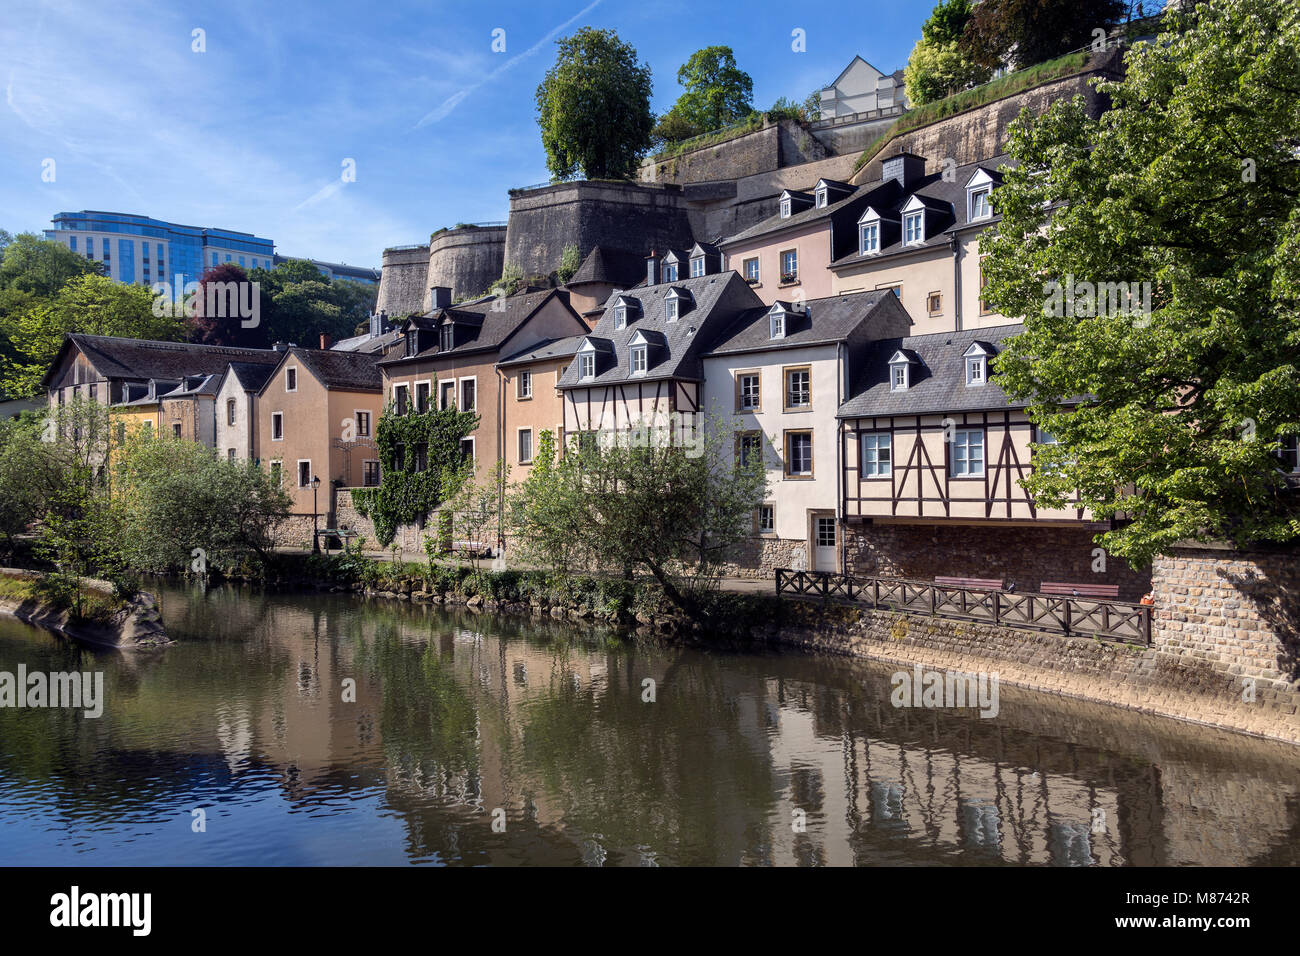 Luxembourg City - Ville de Luxembourg. The walls of the old town viewed from the Grund area of the city. - Stock Image